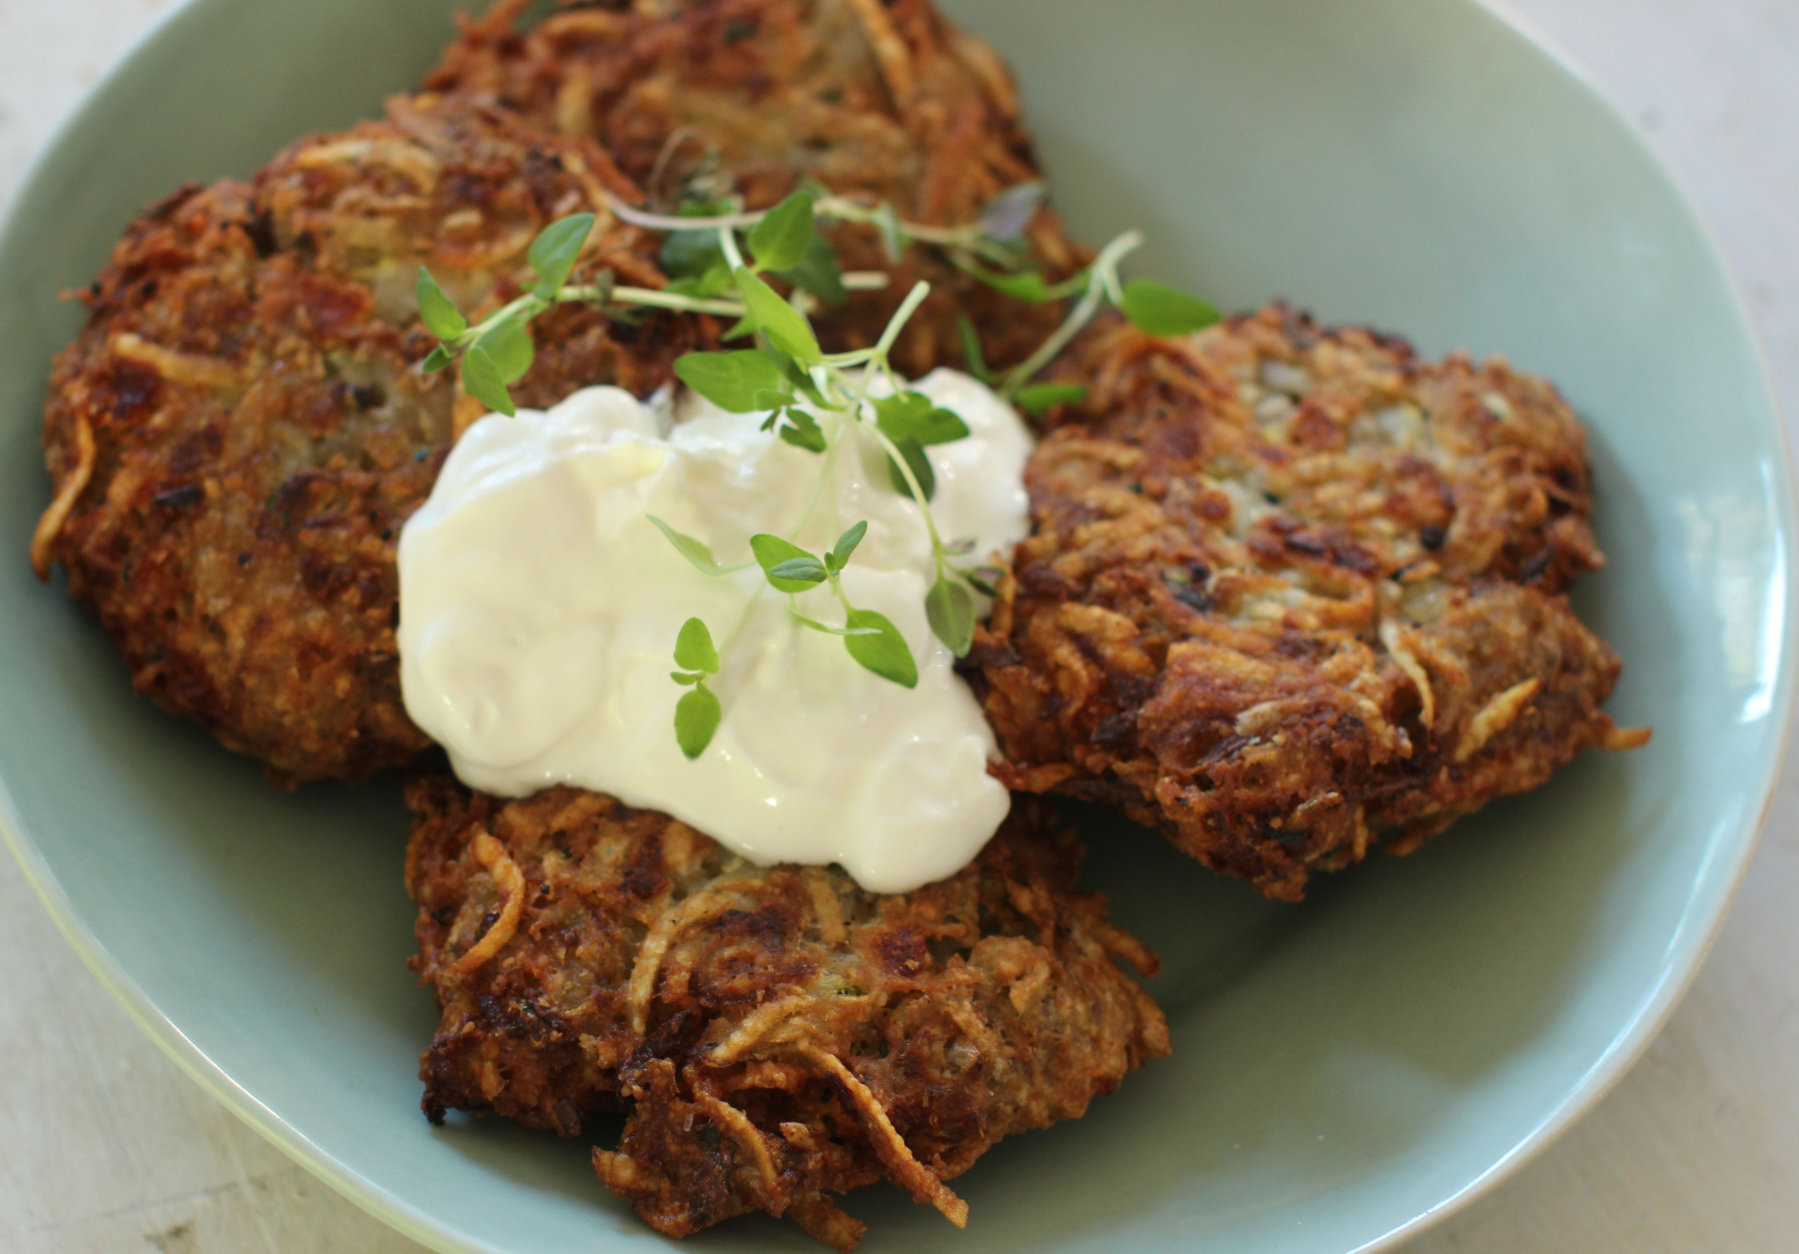 This Oct. 19, 2015 photo shows zesty zucchini and feta latkes in Concord, N.H. This dish is from a recipe by Alison Ladman. (AP Photo/Matthew Mead)